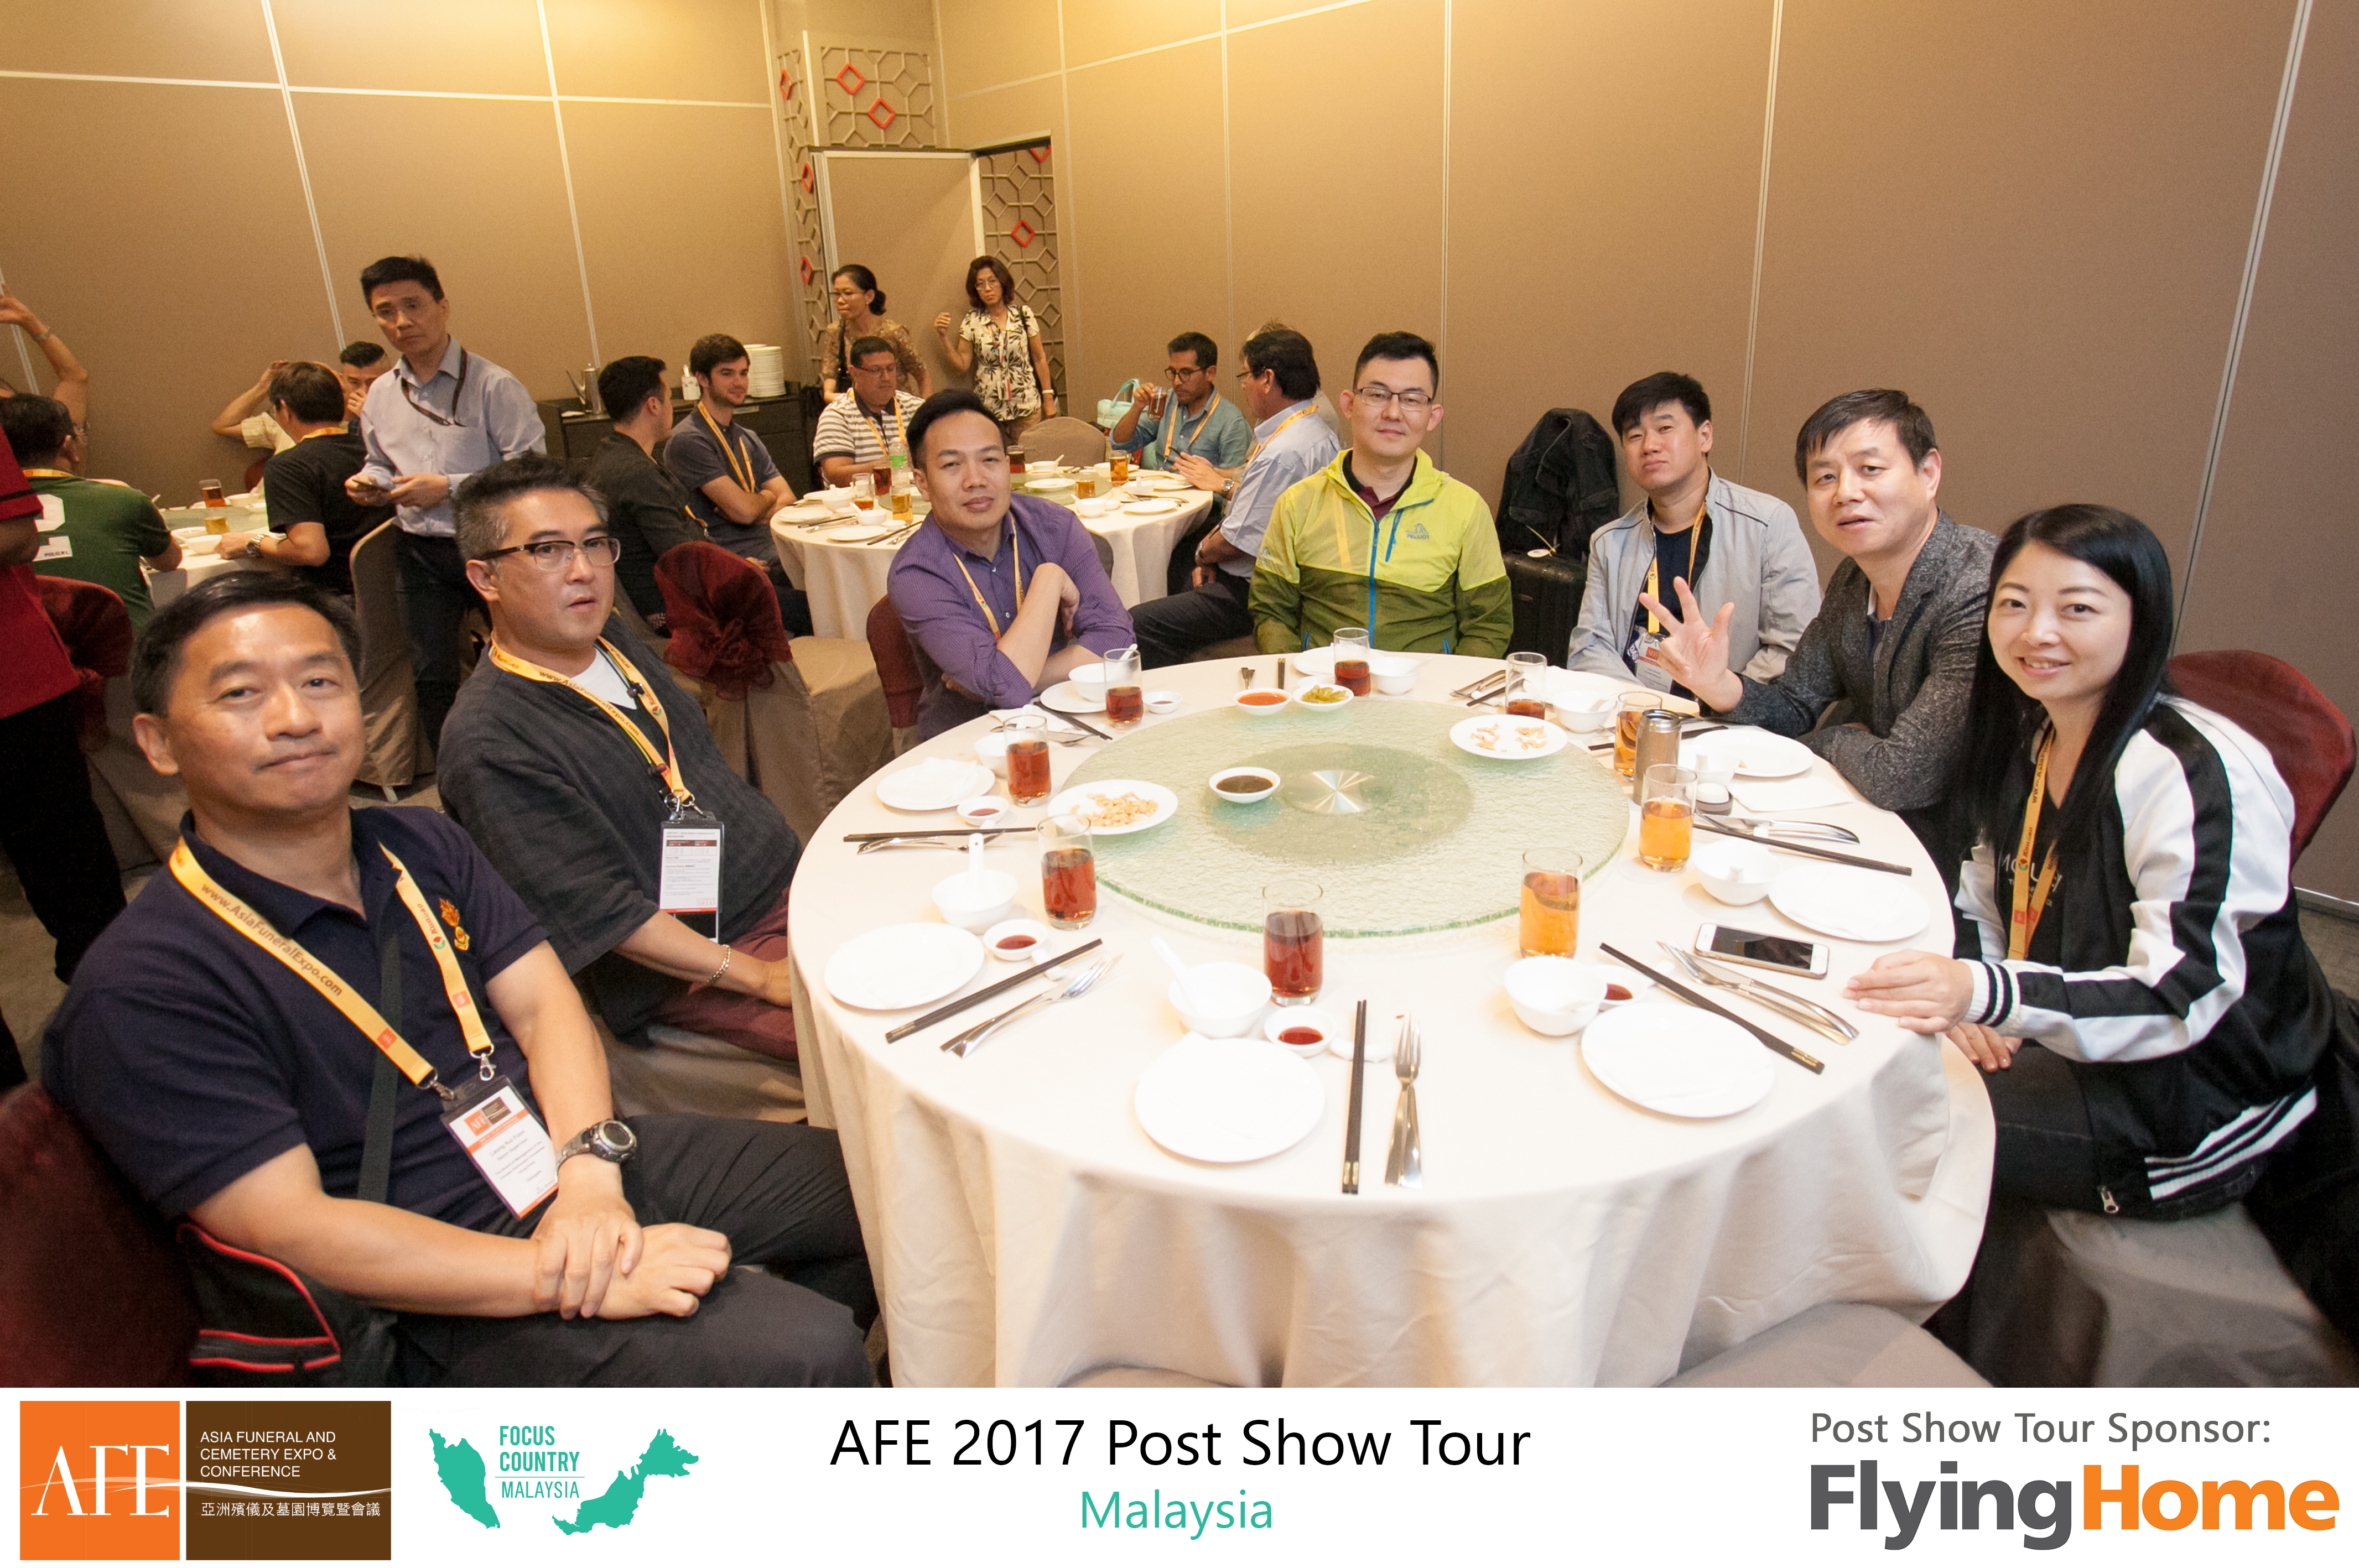 AFE Post Show Tour 2017 Day 1 - 11